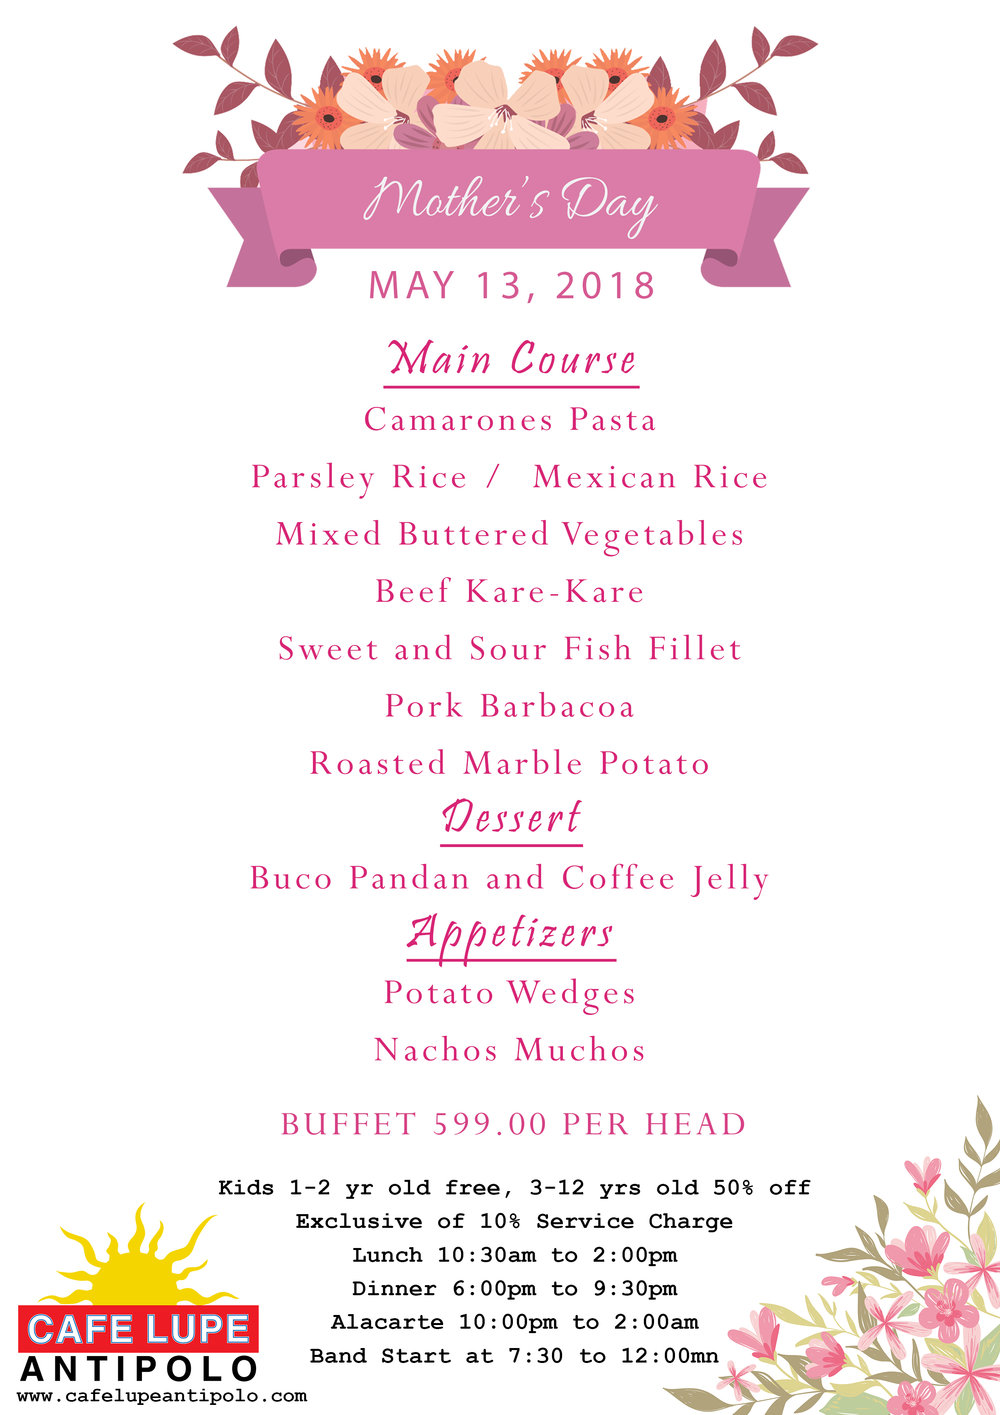 Mother's Day Buffet Menu in Cafe Lupe Antipolo